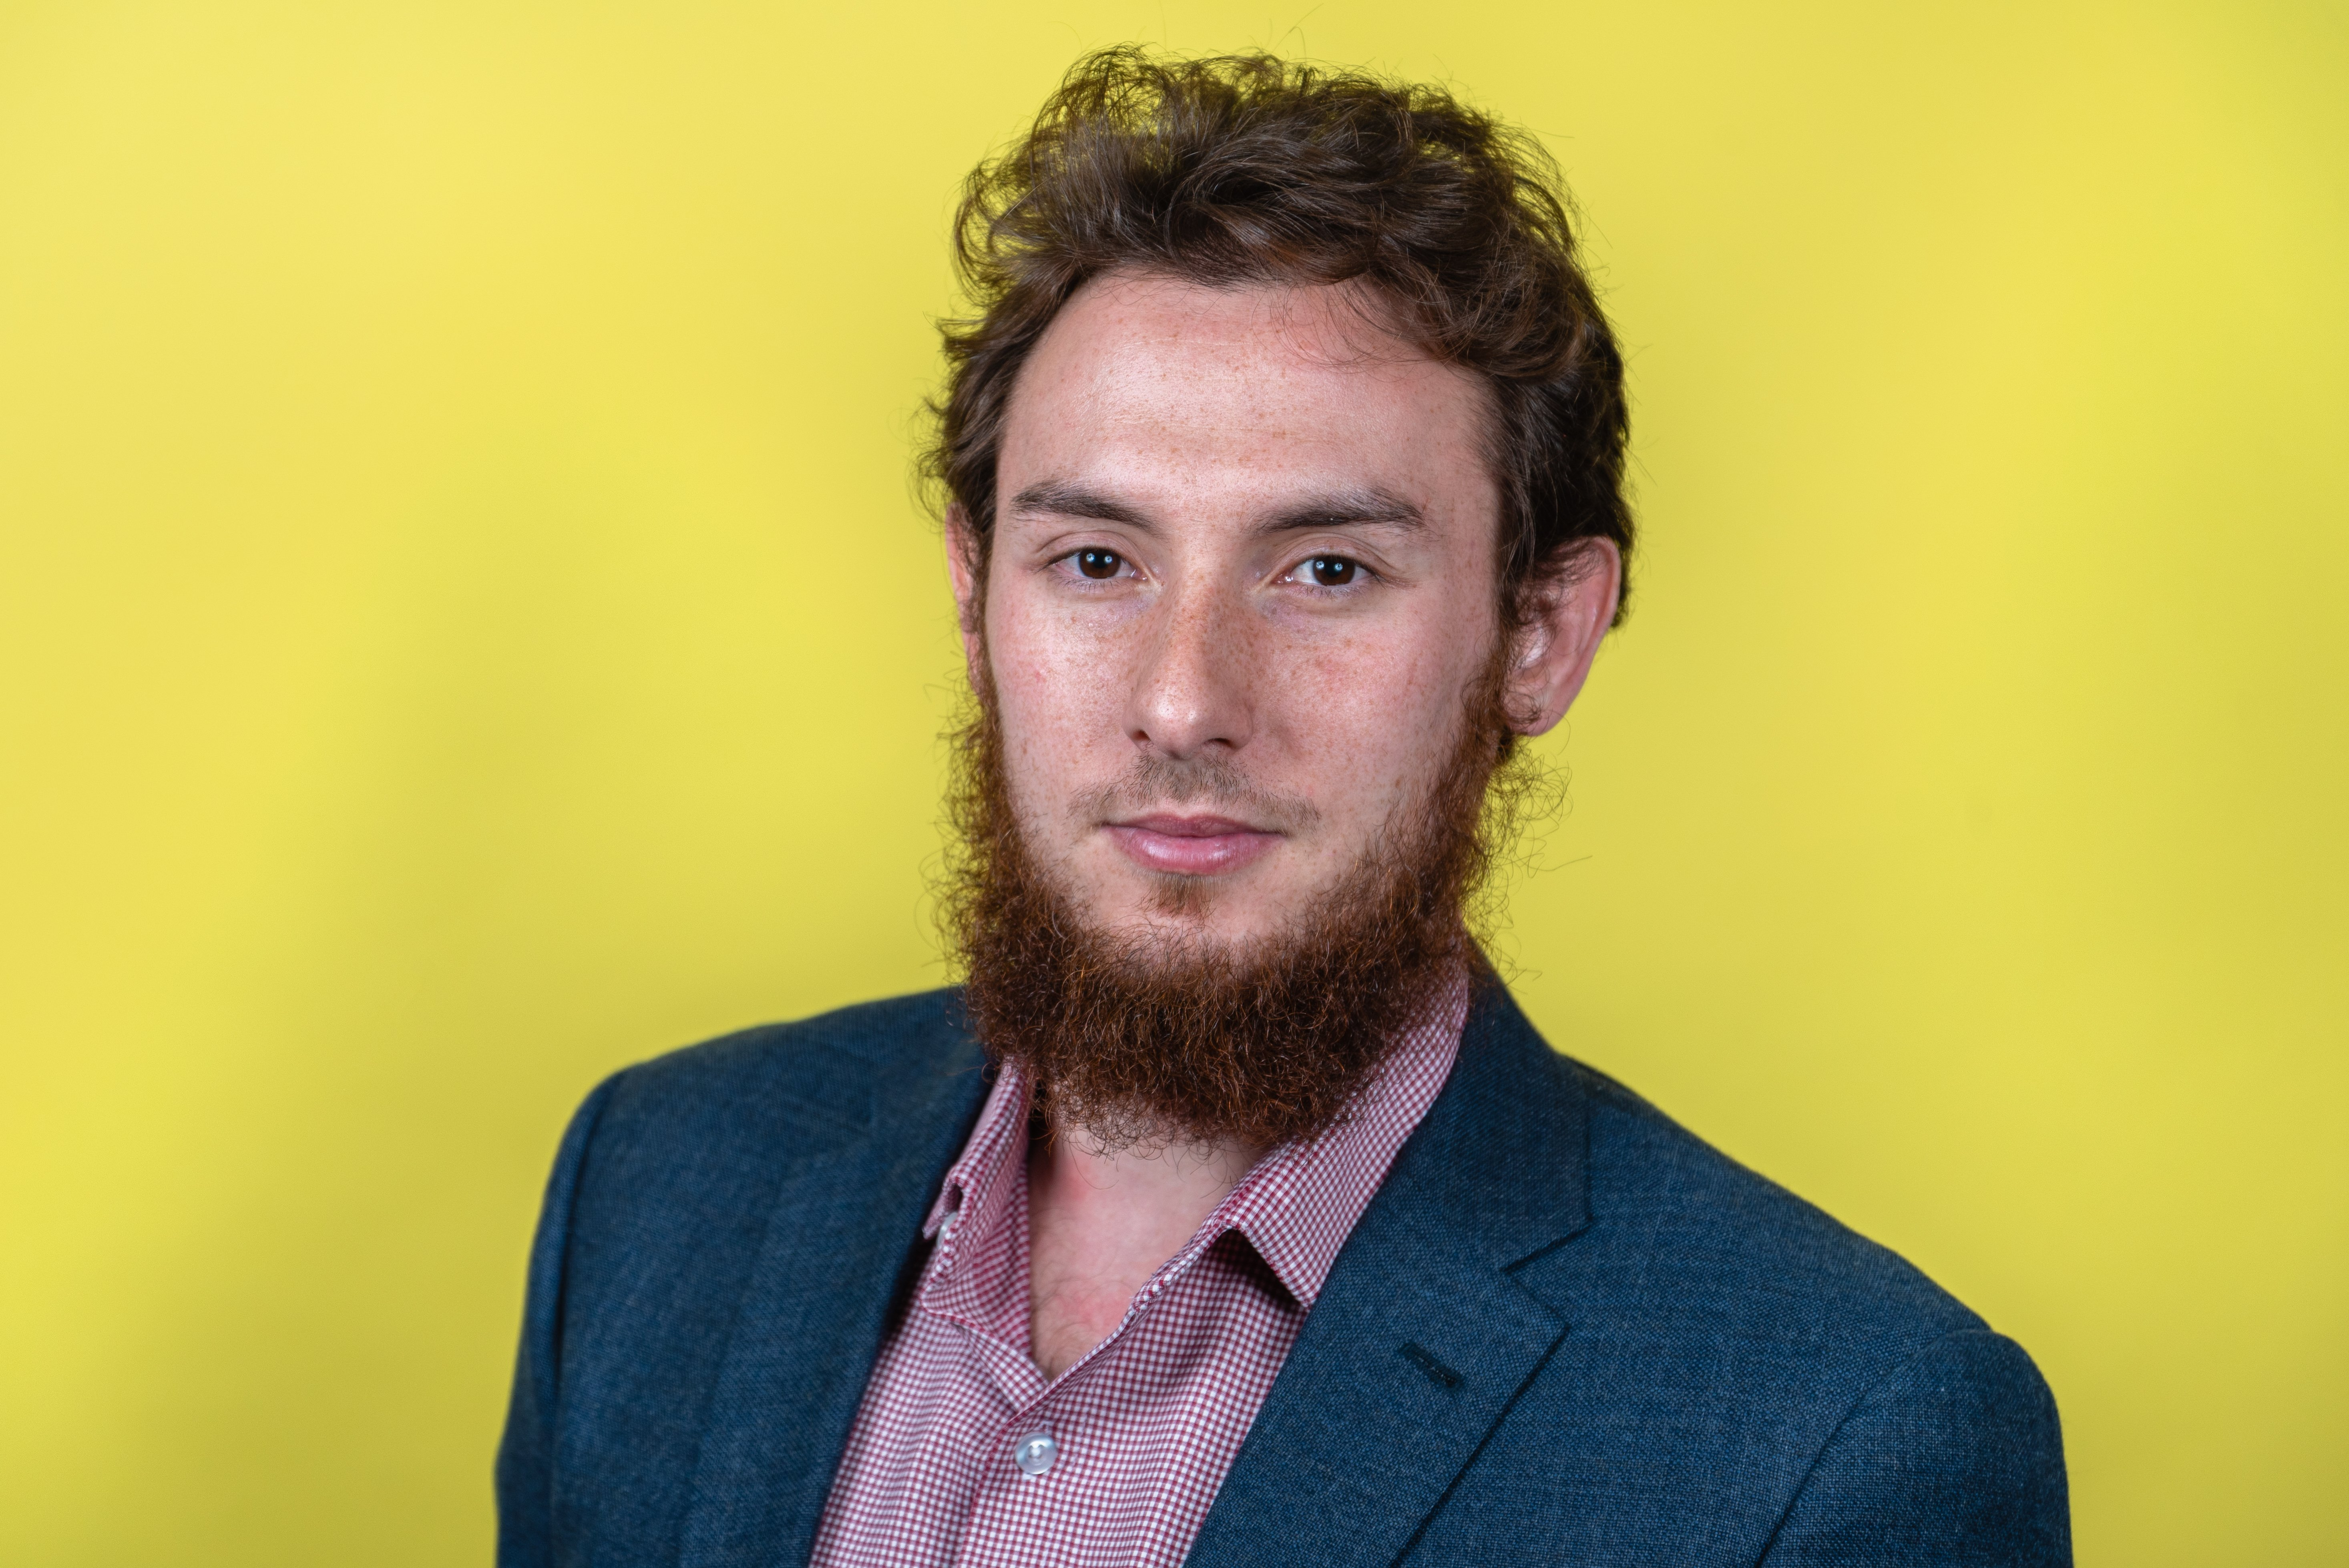 Head-shot taken for a client in a blue-gray suit contrasting in front of a yellow background for company branding,